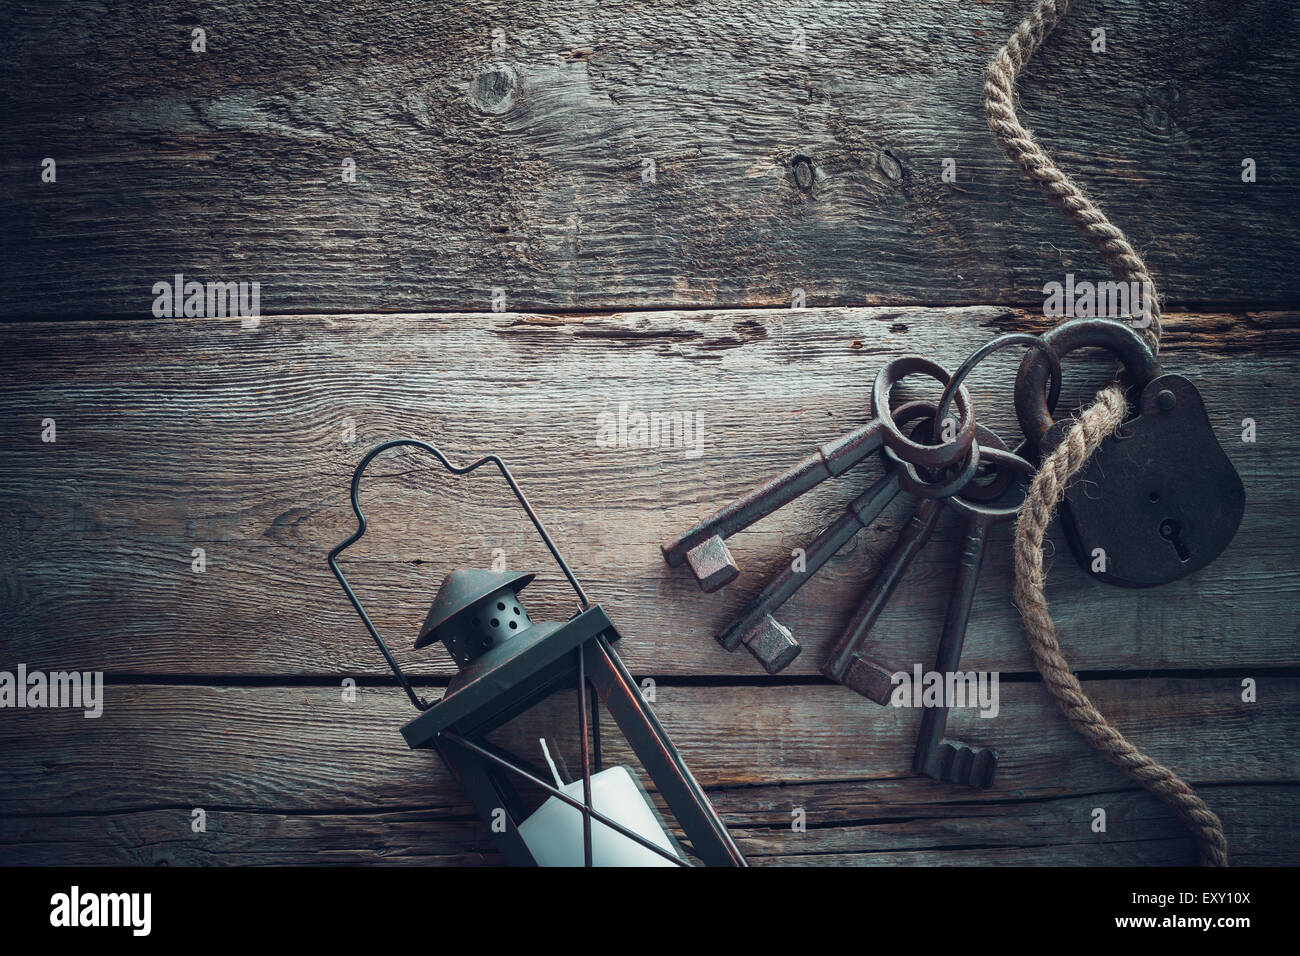 Old rusty lock with keys, vintage lamp and rope on wooden board. Top view. Retro stylized photo. - Stock Image